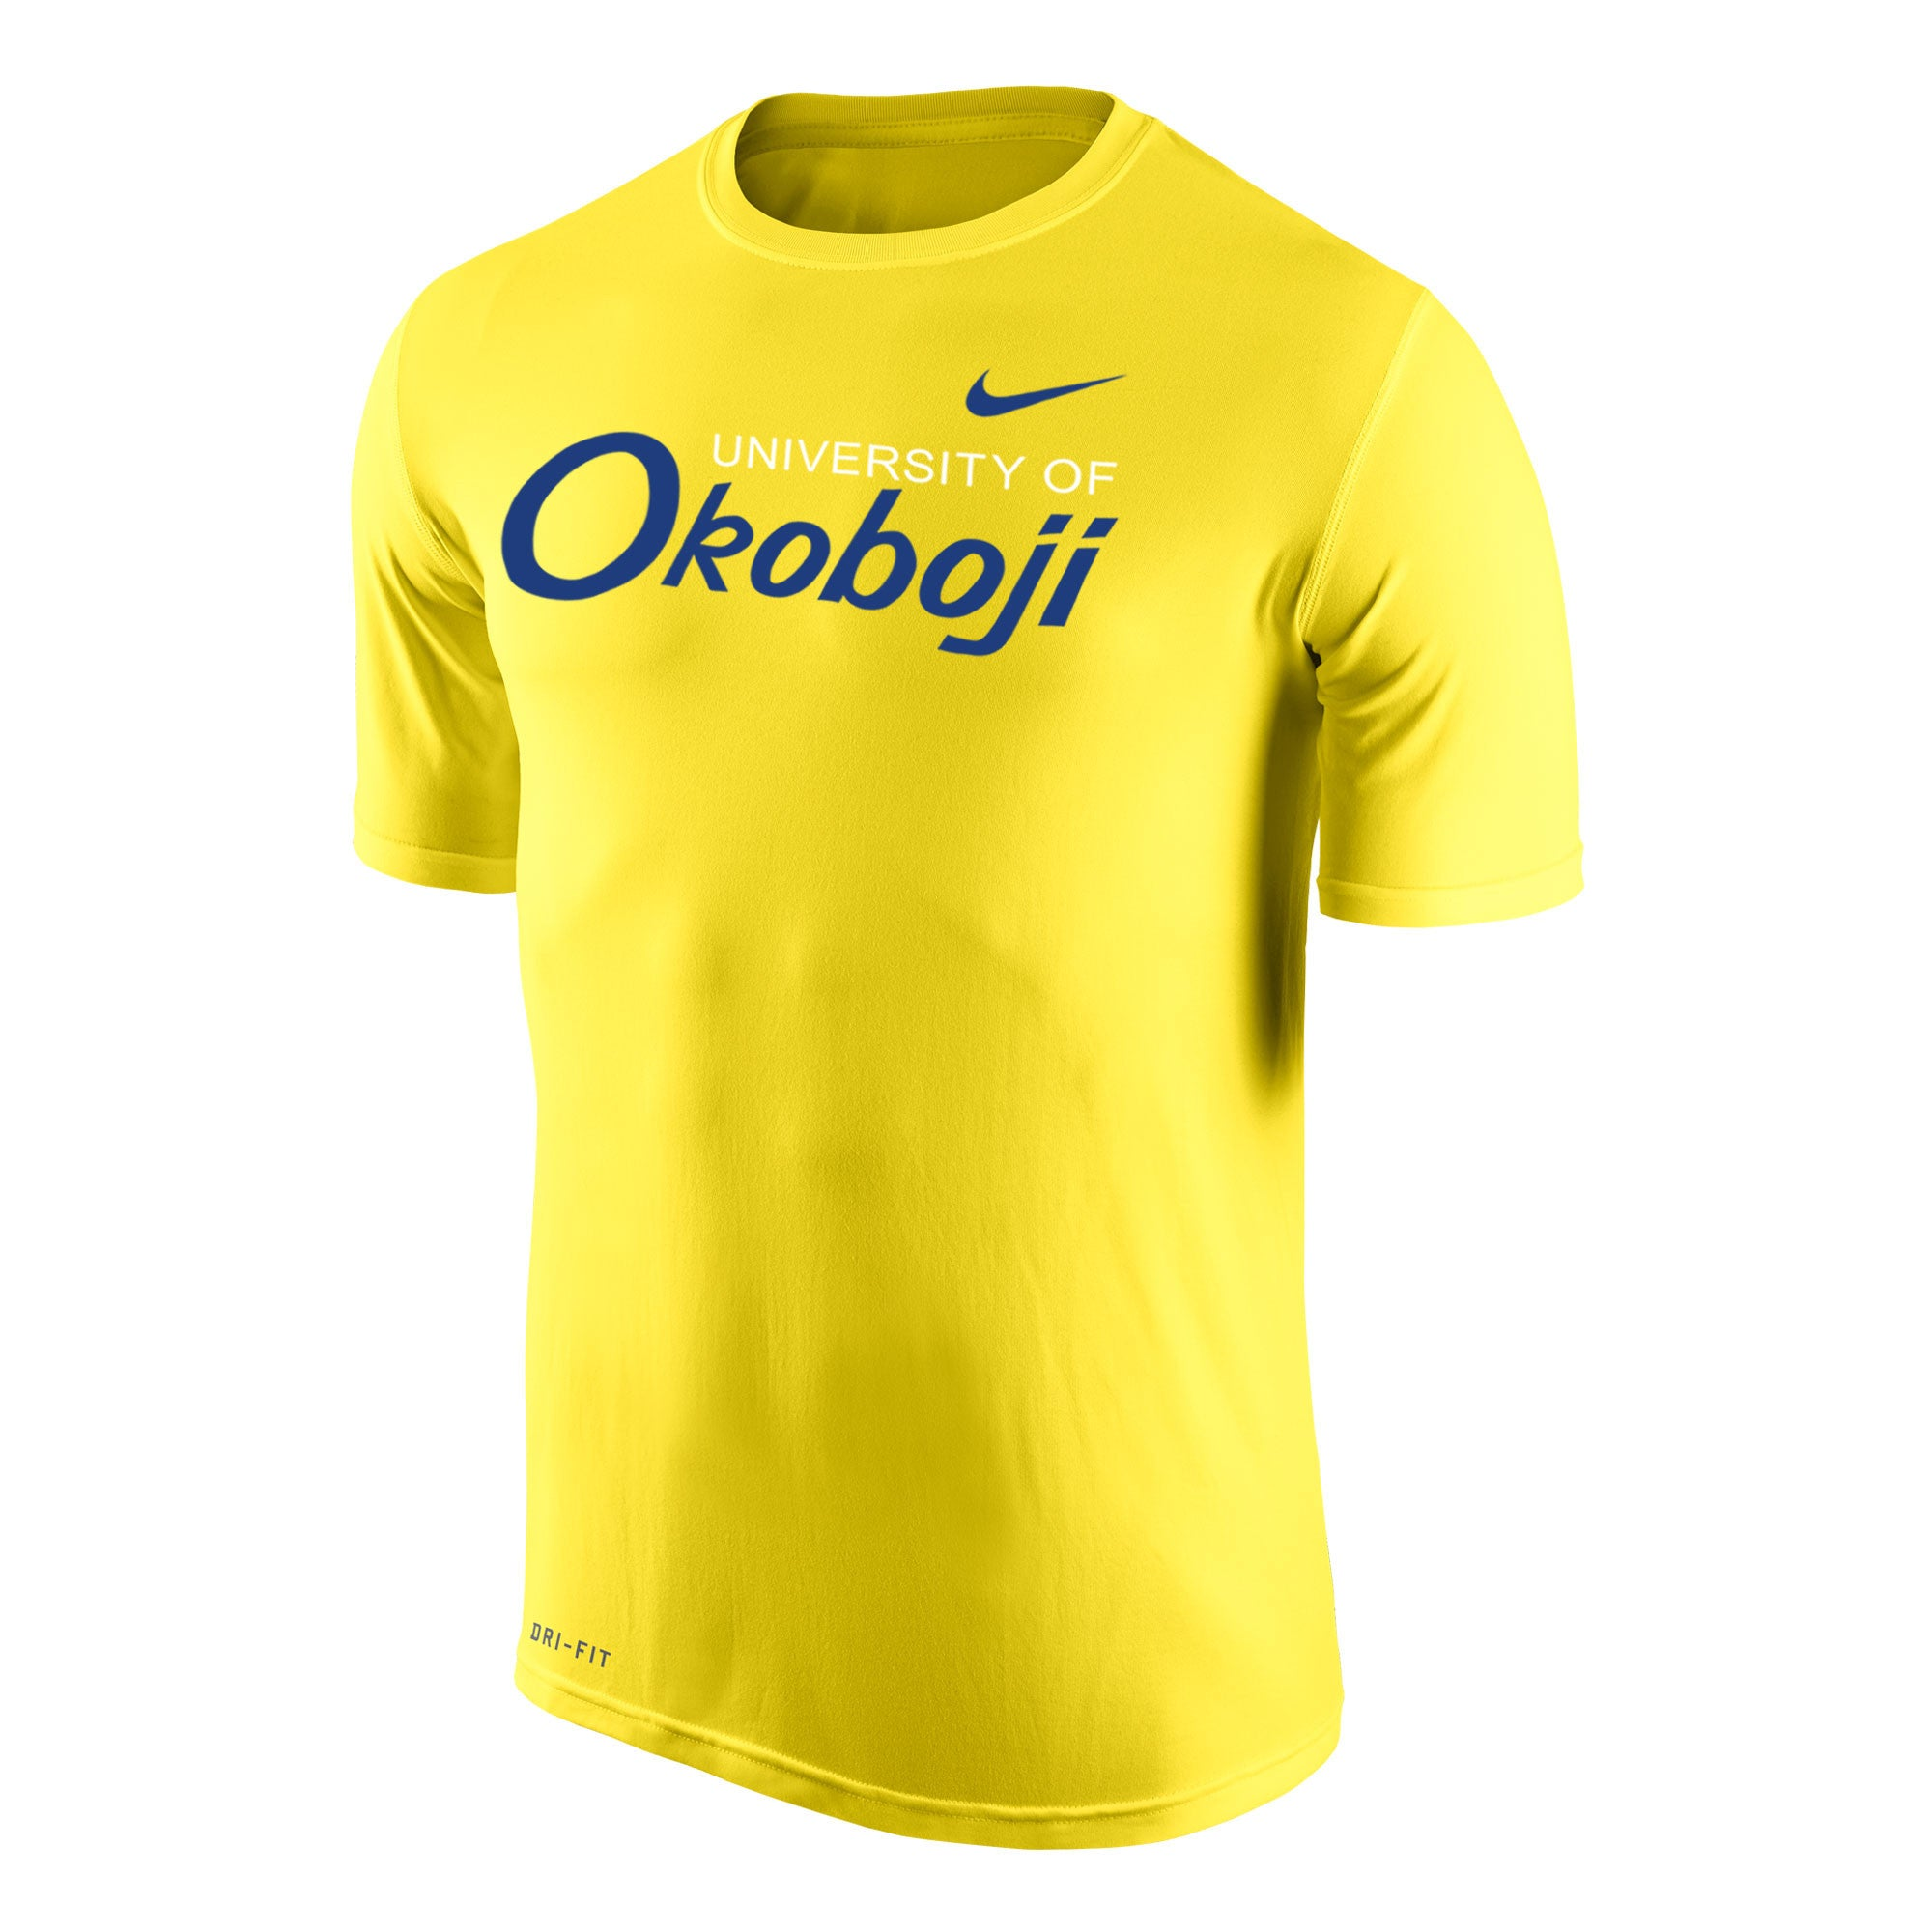 Men's Nike Dri-FIT Legend 2.0 Short Sleeve Tee - Yellow